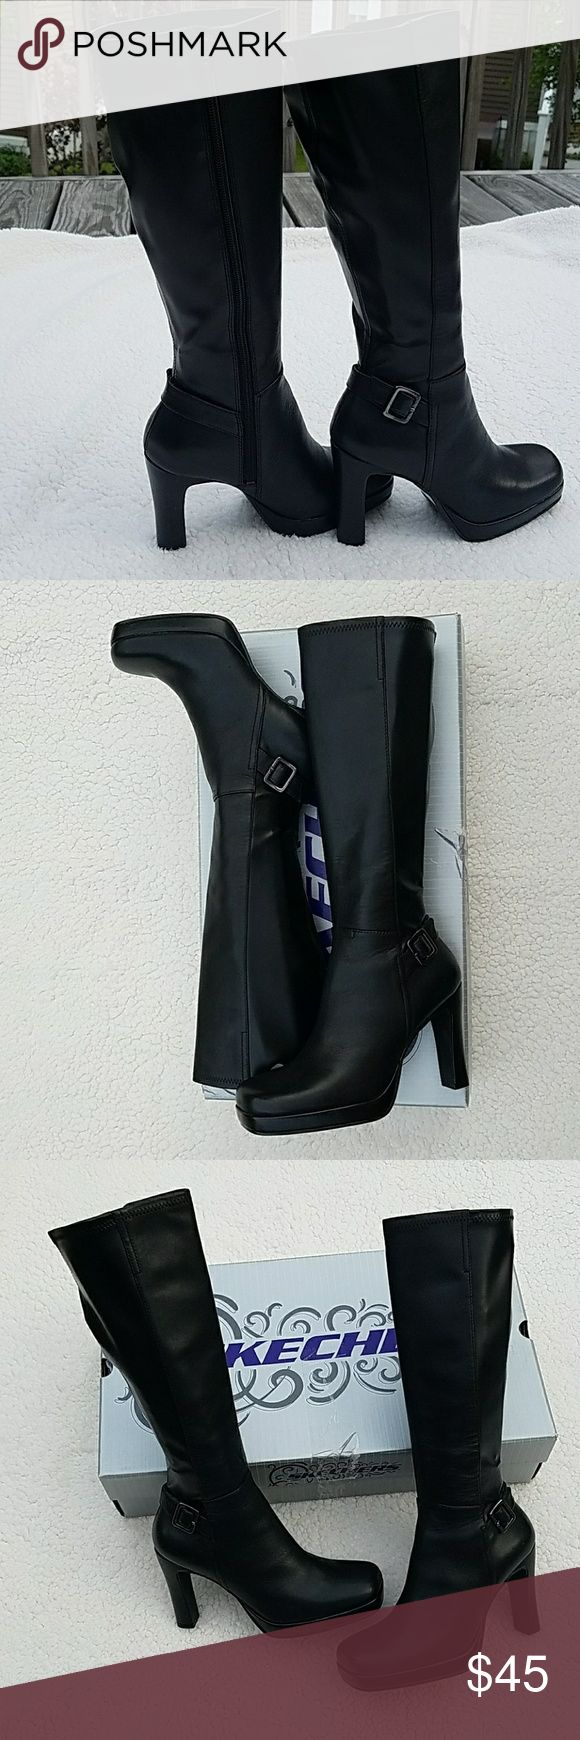 """NEW black platform leather boots by Skechers NEW black platform leather boots by Skechers in size 5 1/2. These beauties have a zipper on the inside and buckle detail. There are very minor scratches from storing them and one ding below the buckle on one of the boots. Otherwise perfect. They were stored in the box and will be shipped in the box, unless buyer doesn't want the box.   These boots are new and have never been worn. Soft leather upper.  Measurements:  Heel is 4"""" with a 3/4""""…"""